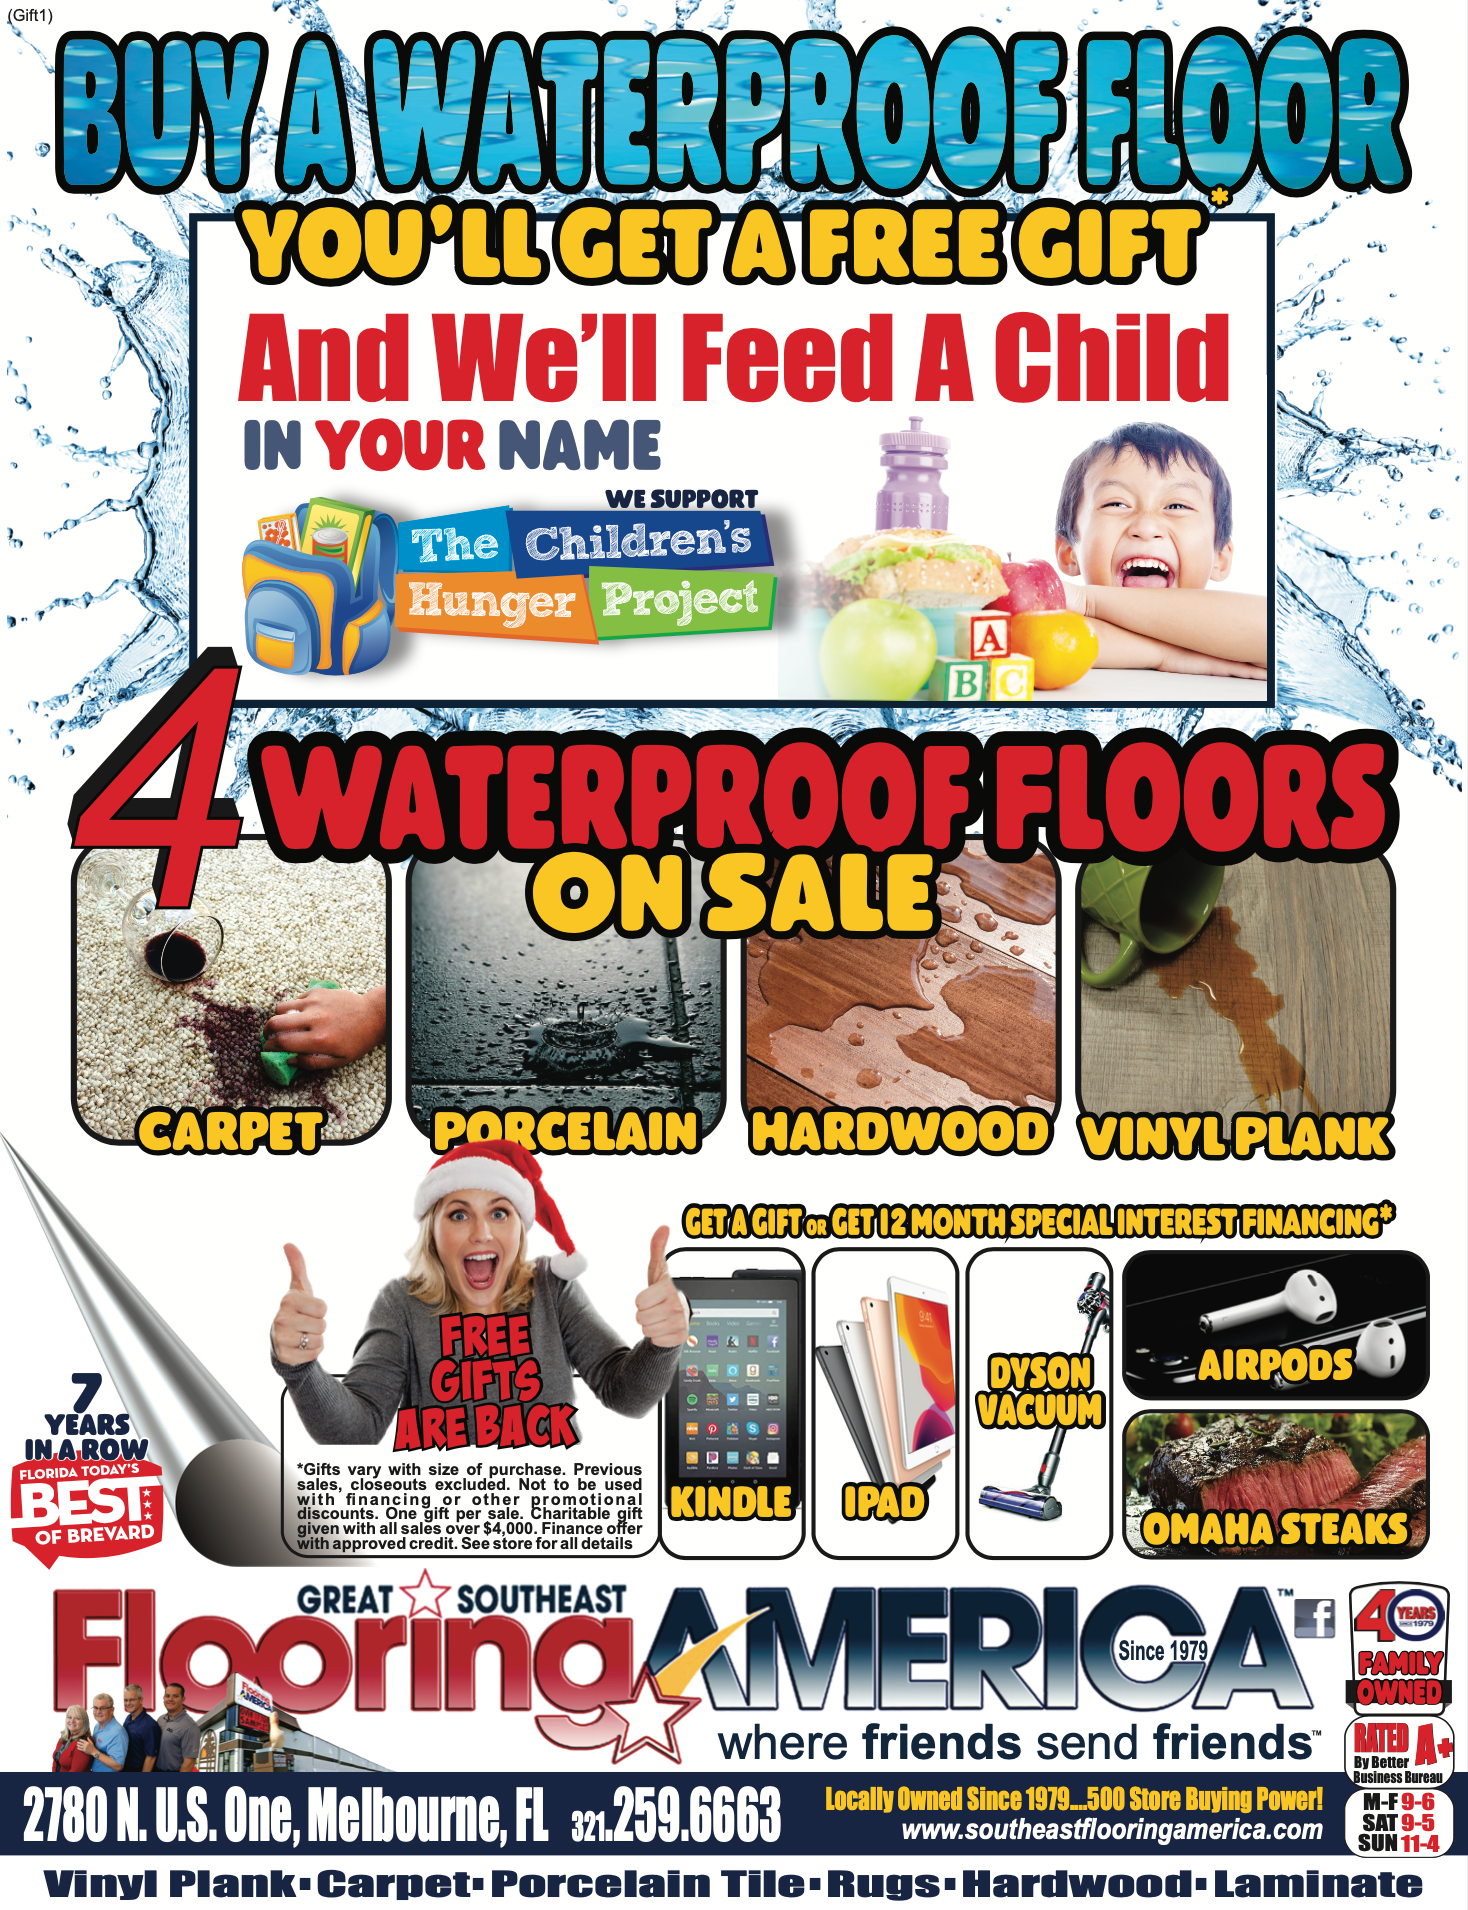 Buy a Waterproof Floor, You'll Get a Free Gift